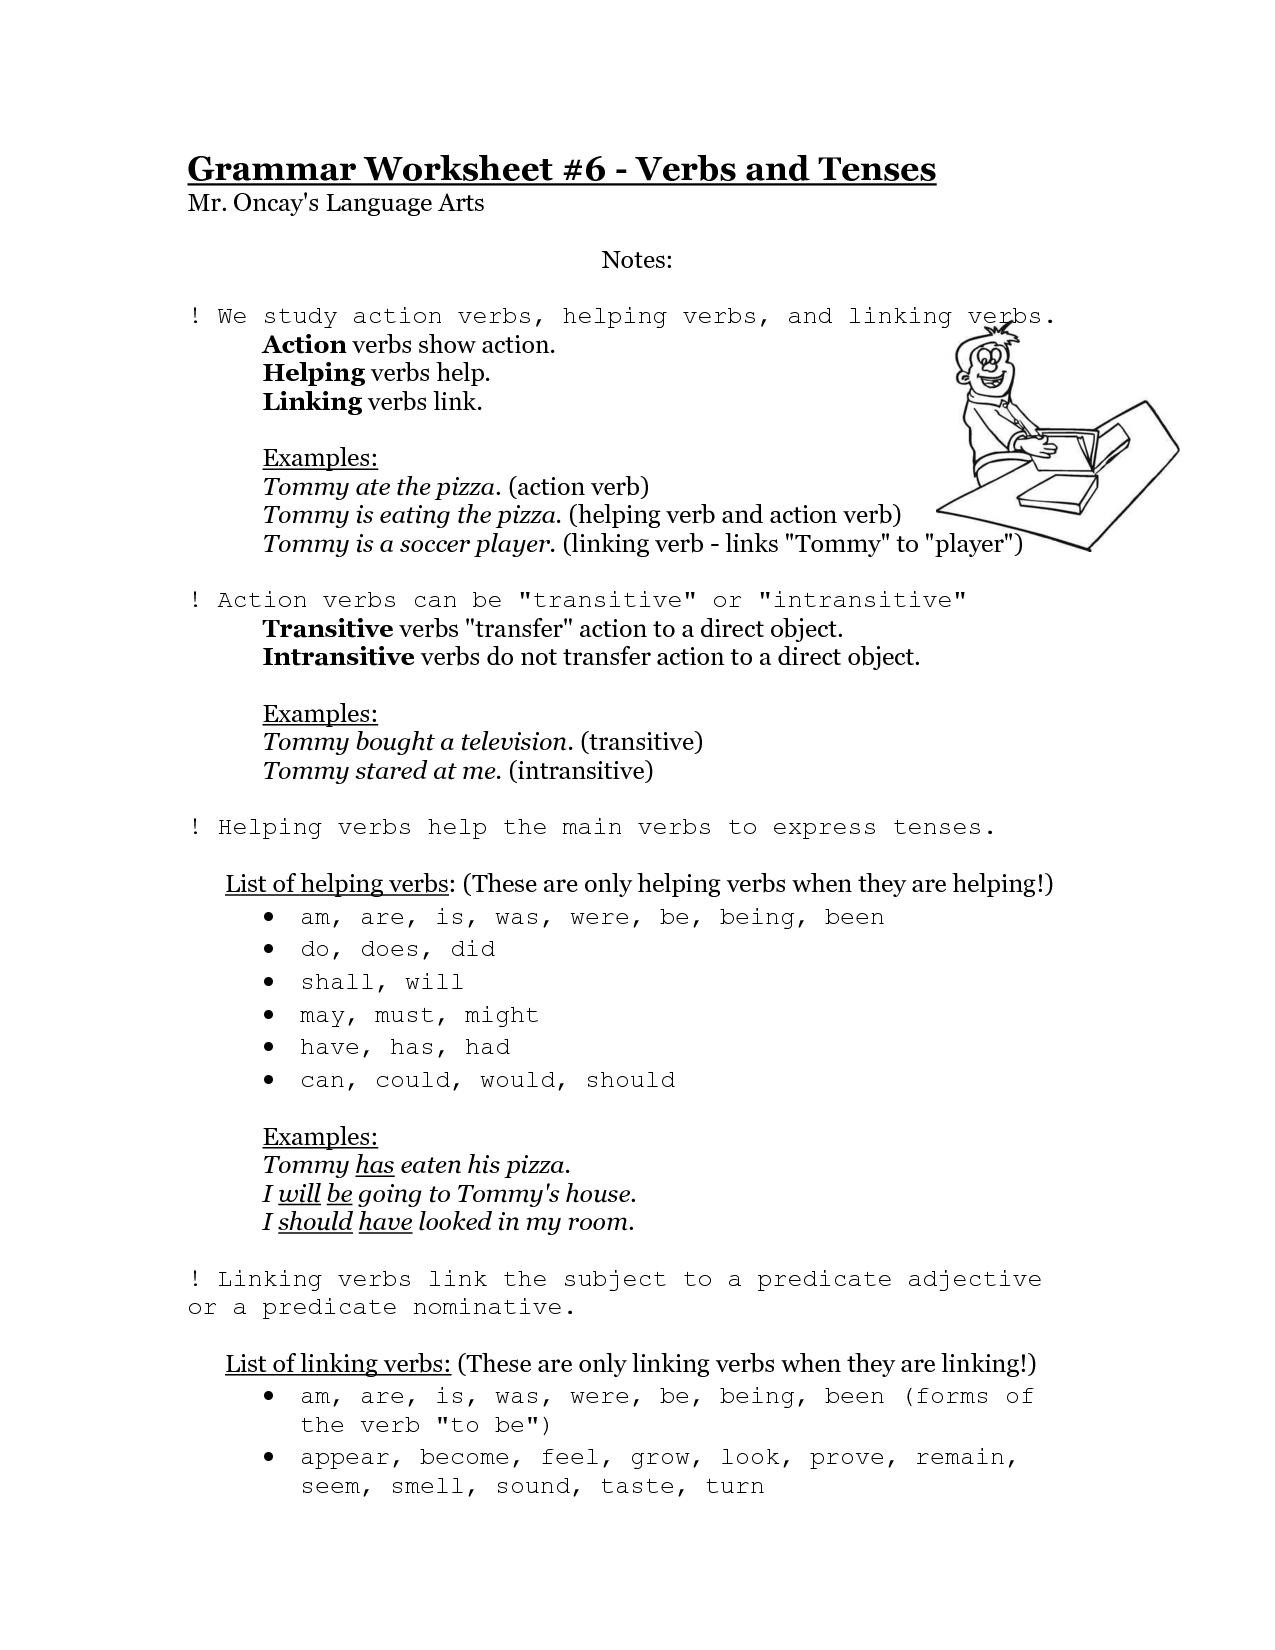 30 Transitive And Intransitive Verbs Worksheet